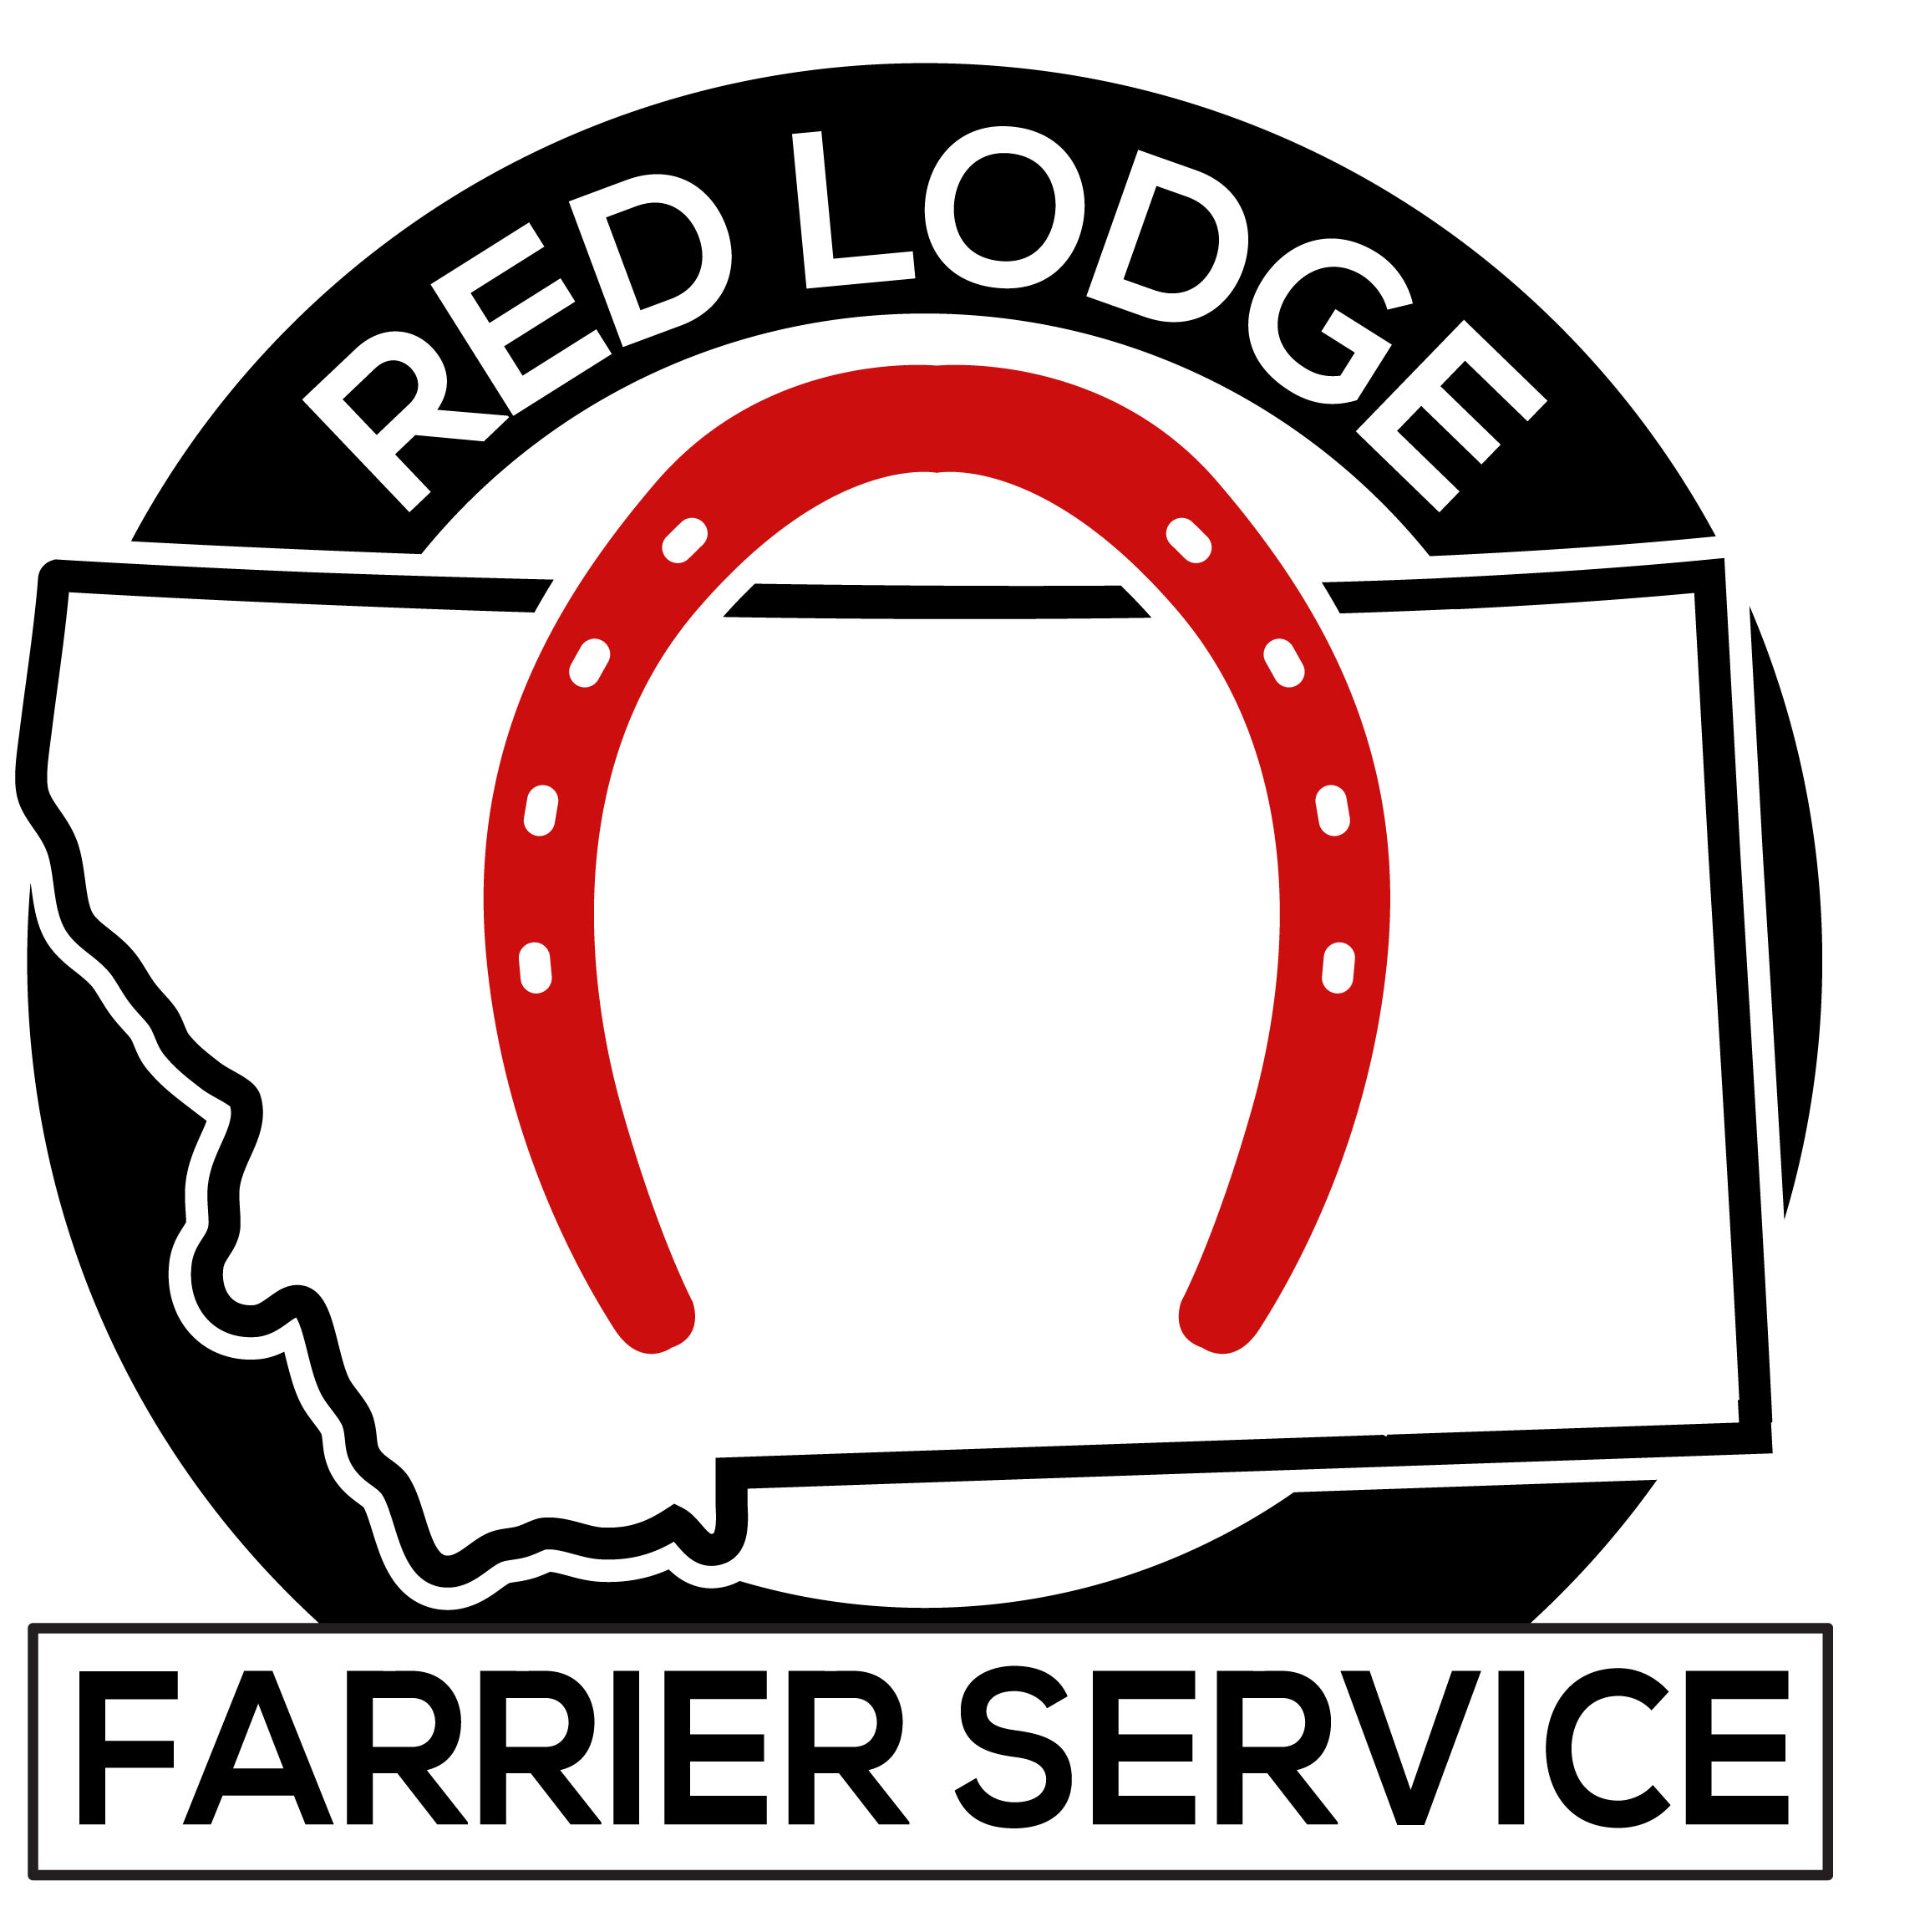 Red Lodge Farrier Service